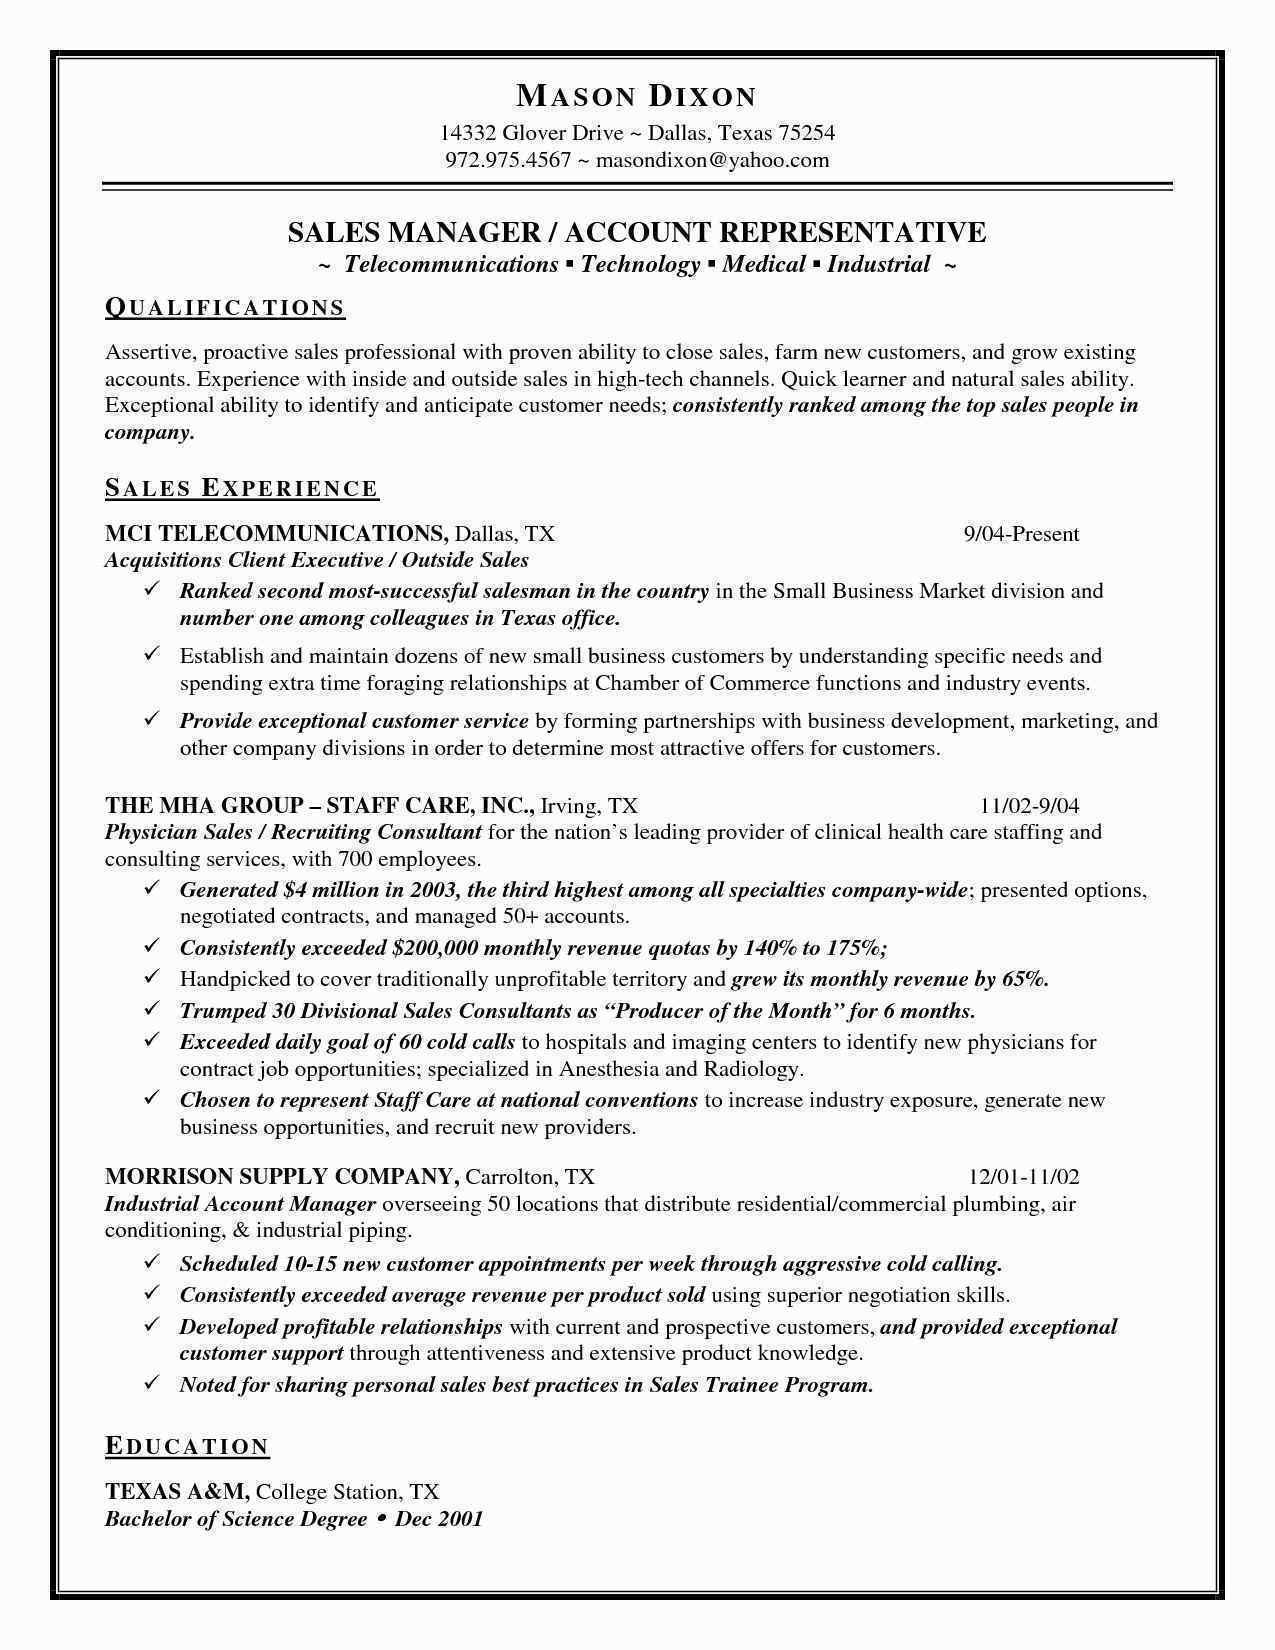 Retail Resume No Experience - Retail assistant Resume No Experience Archives Safextrans Save